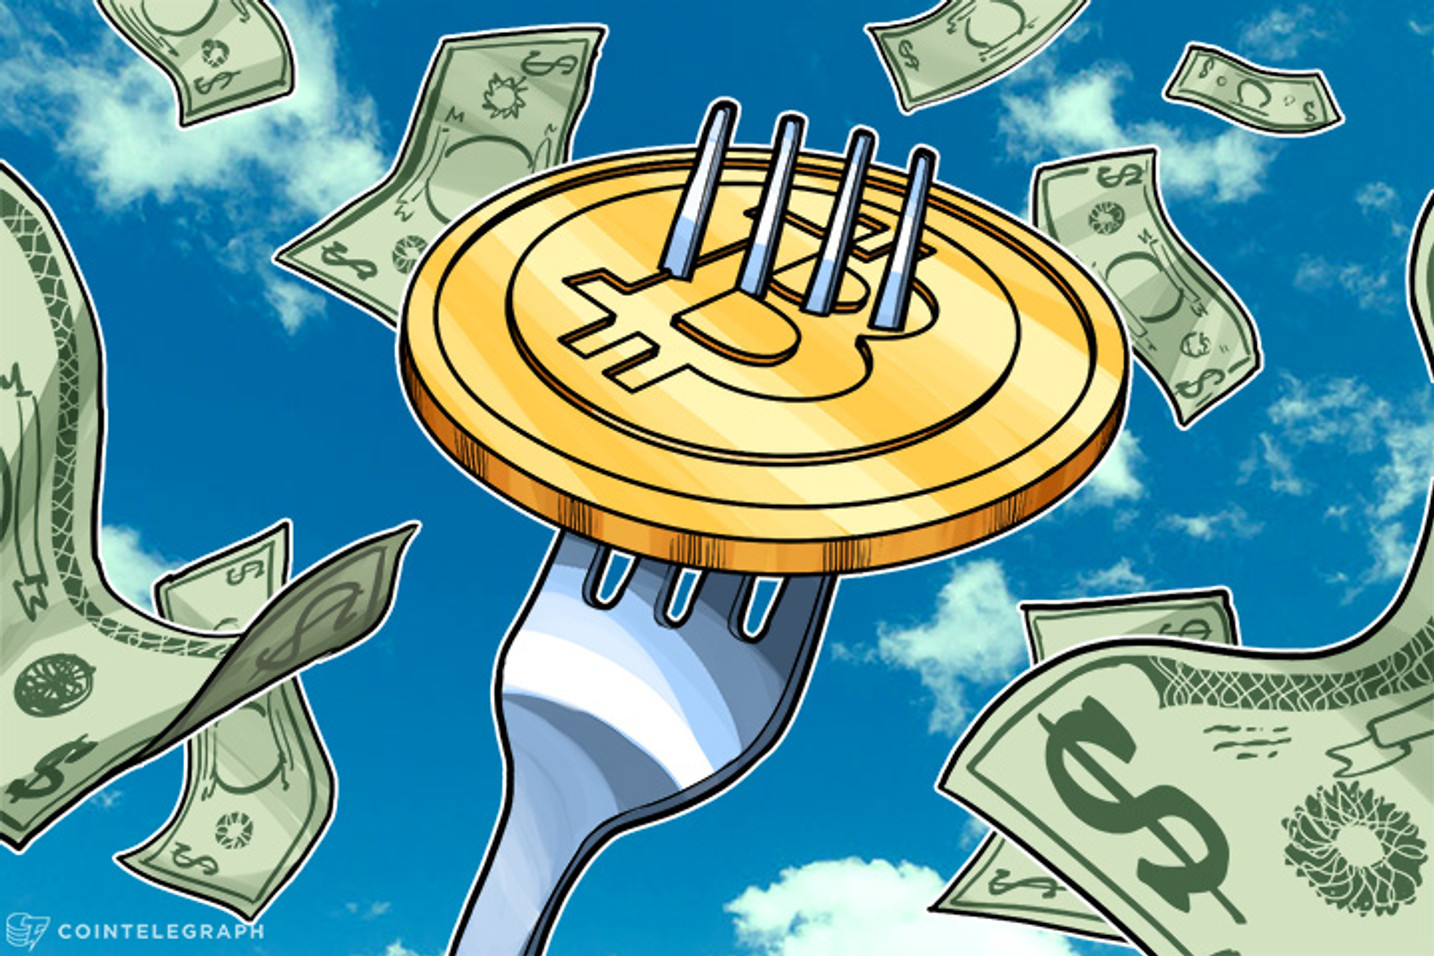 Suddenly, Bitcoin GPU Hard Fork Could Give Bitcoiners 'More Free Money'